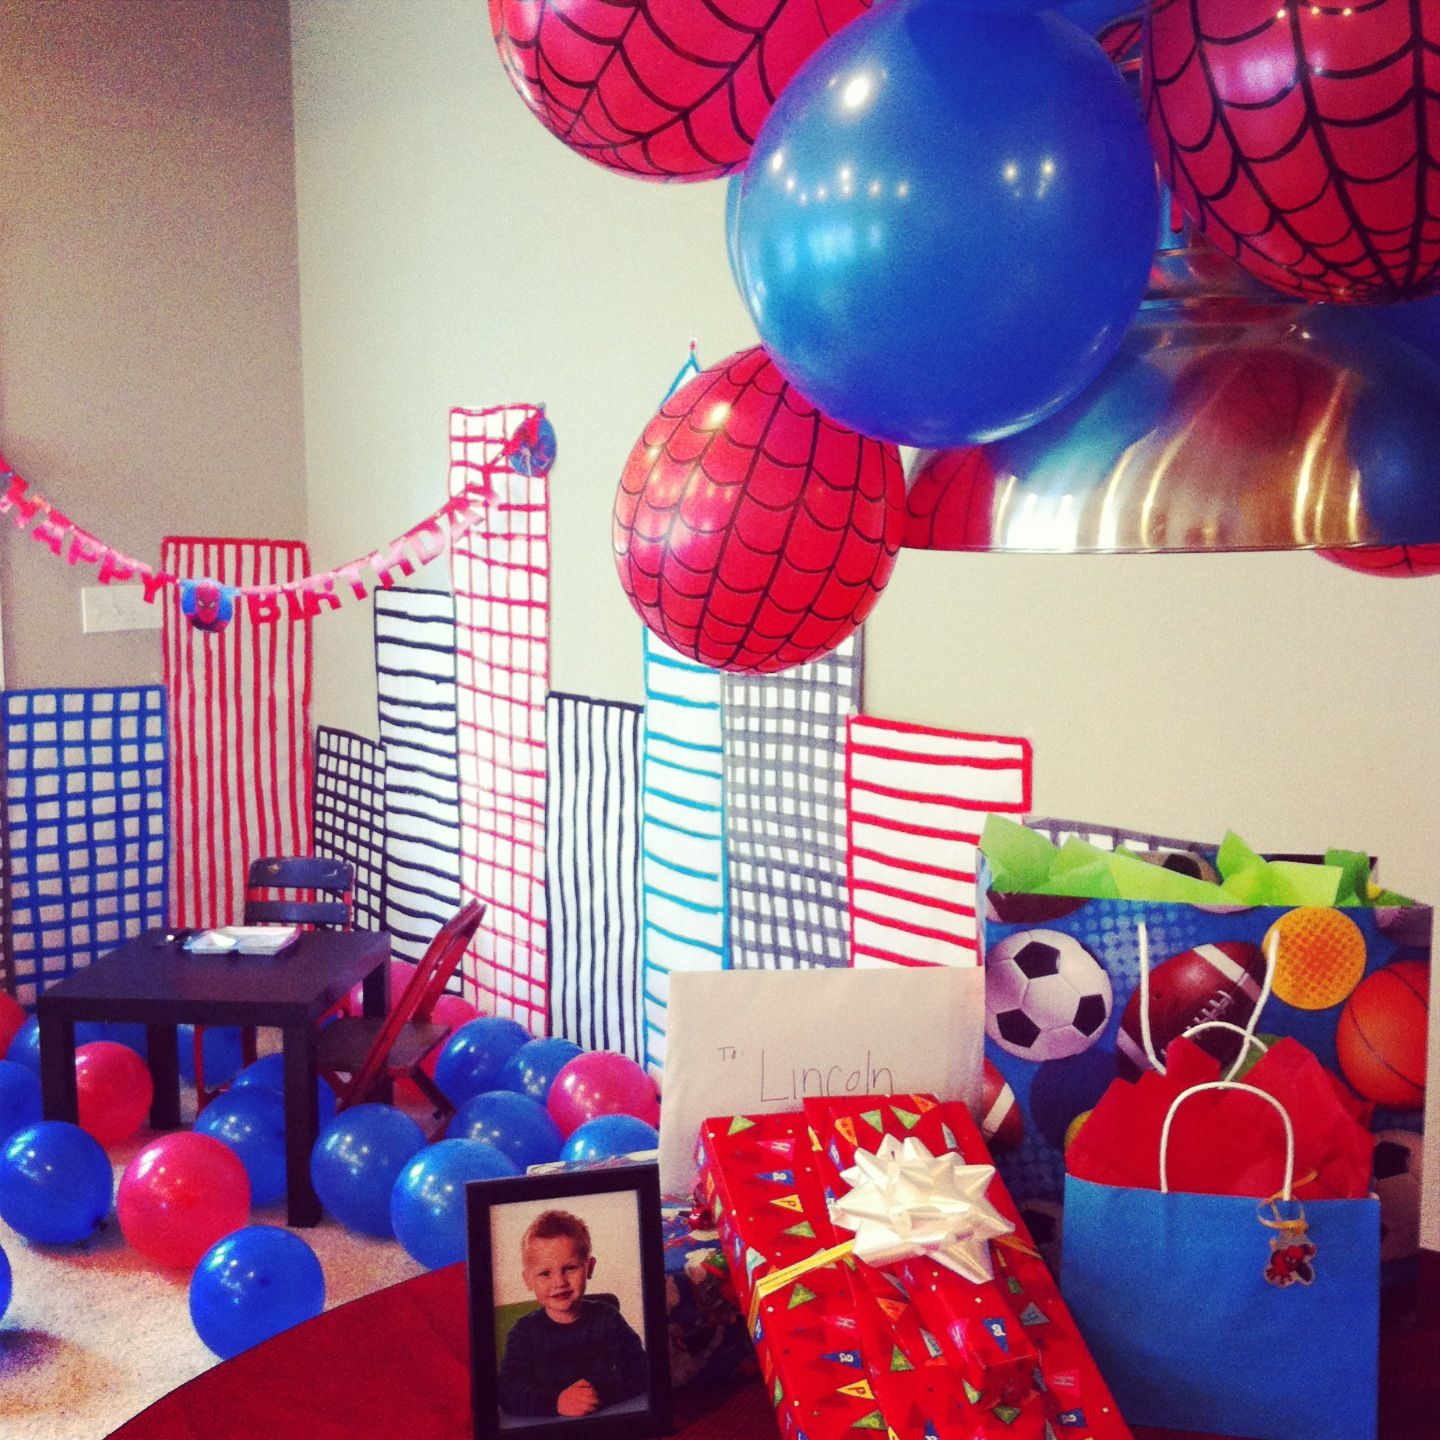 this gives me an idea...red balloons and just use black